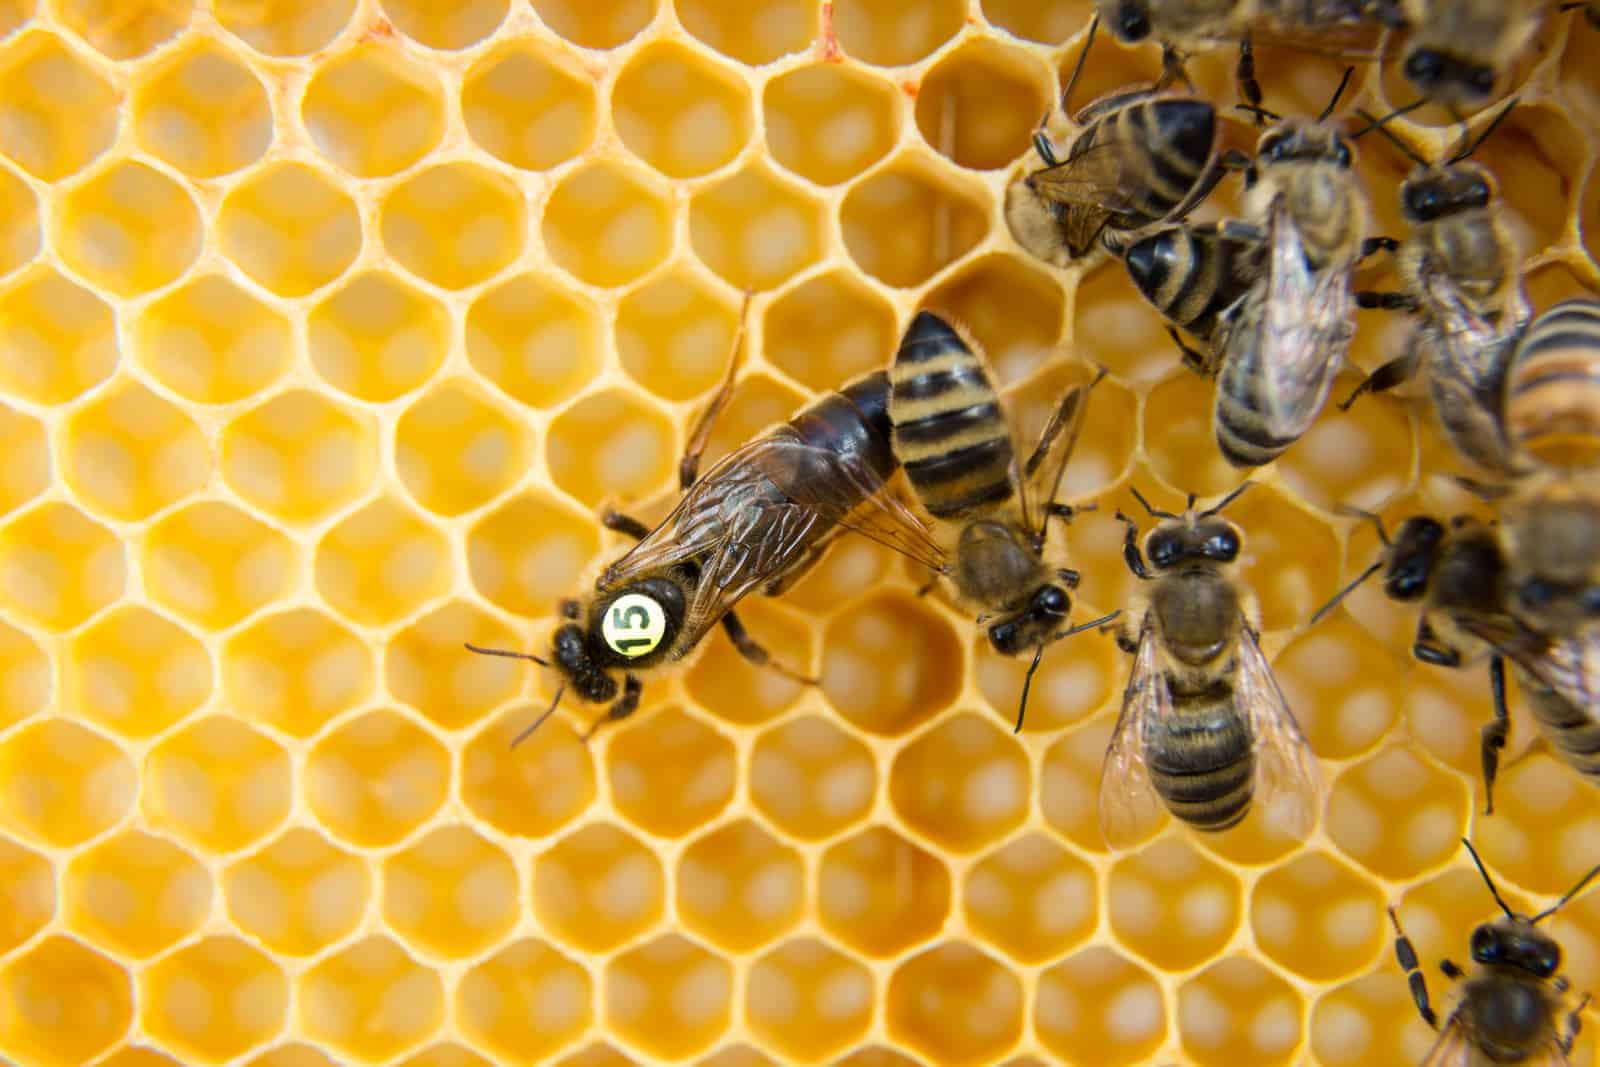 why is your queen bee not laying eggs?